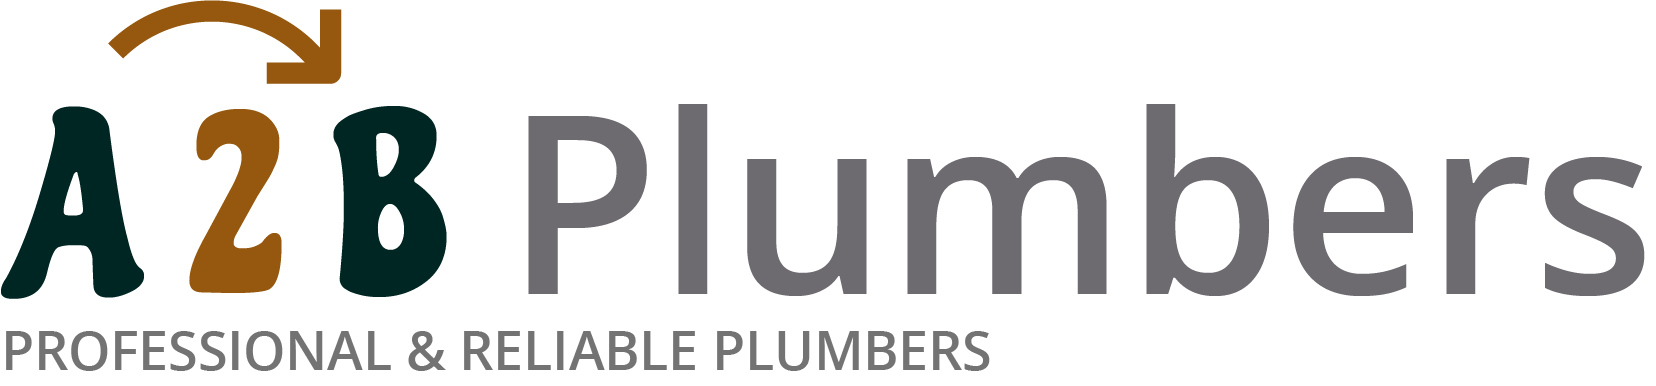 If you need a boiler installed, a radiator repaired or a leaking tap fixed, call us now - we provide services for properties in Prescot and the local area.